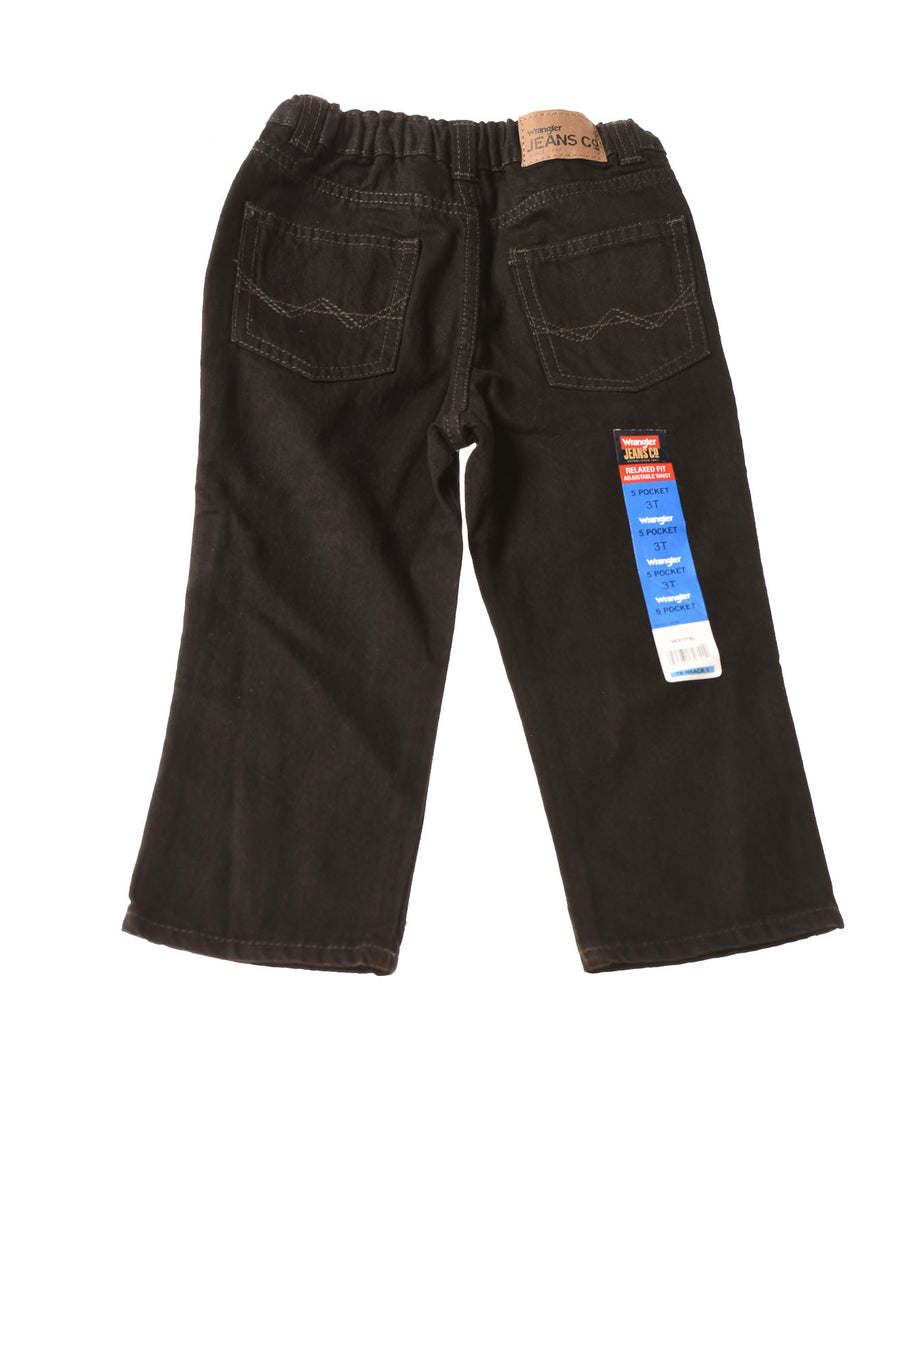 NEW Wrangler Toddler Boy's Jeans 3T Black